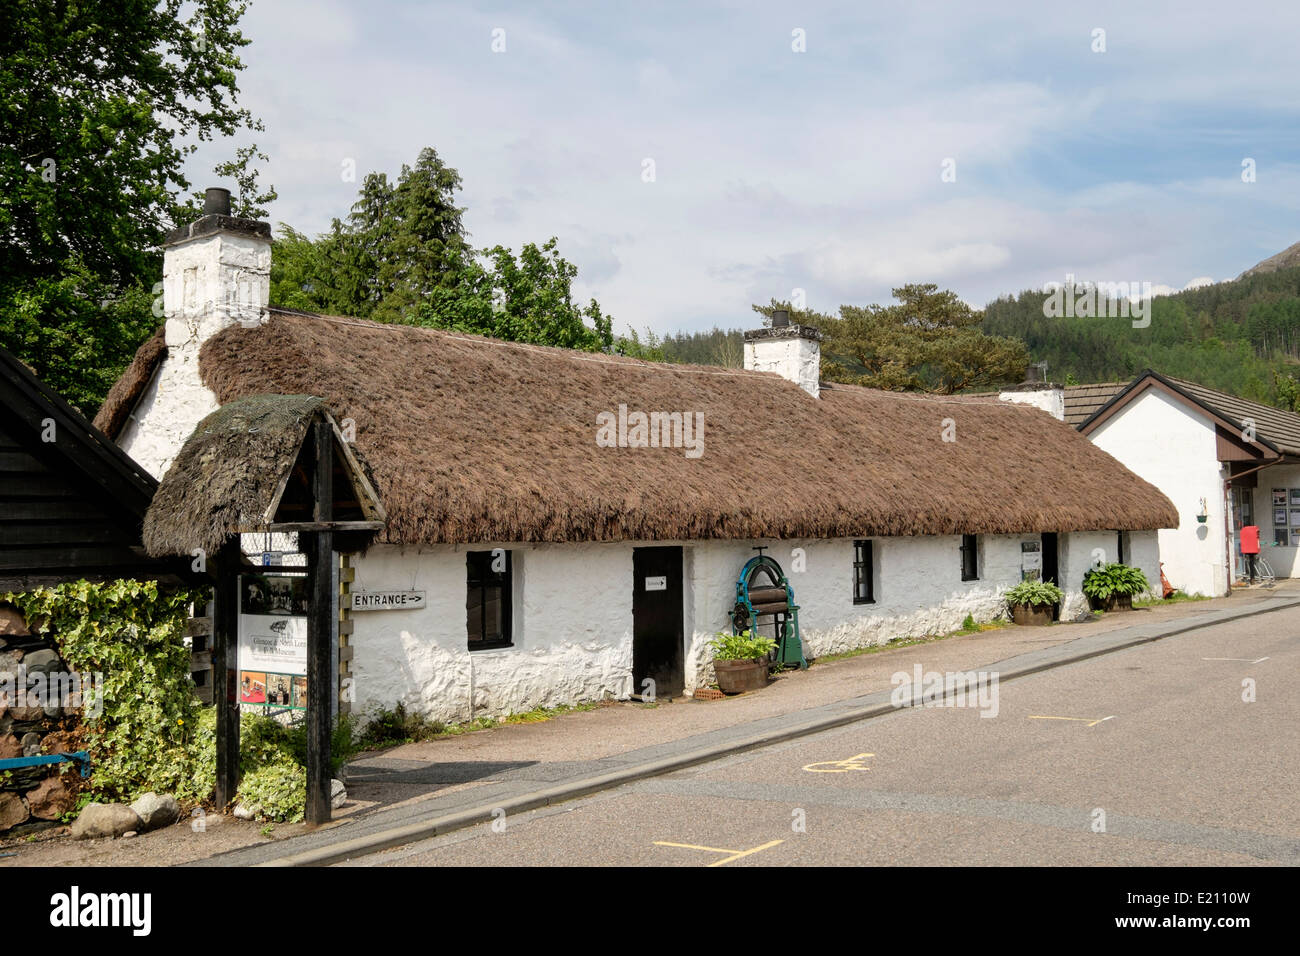 Glencoe and North Lorn Folk Museum in old thatched traditional building in village street in Scottish Highlands. - Stock Image